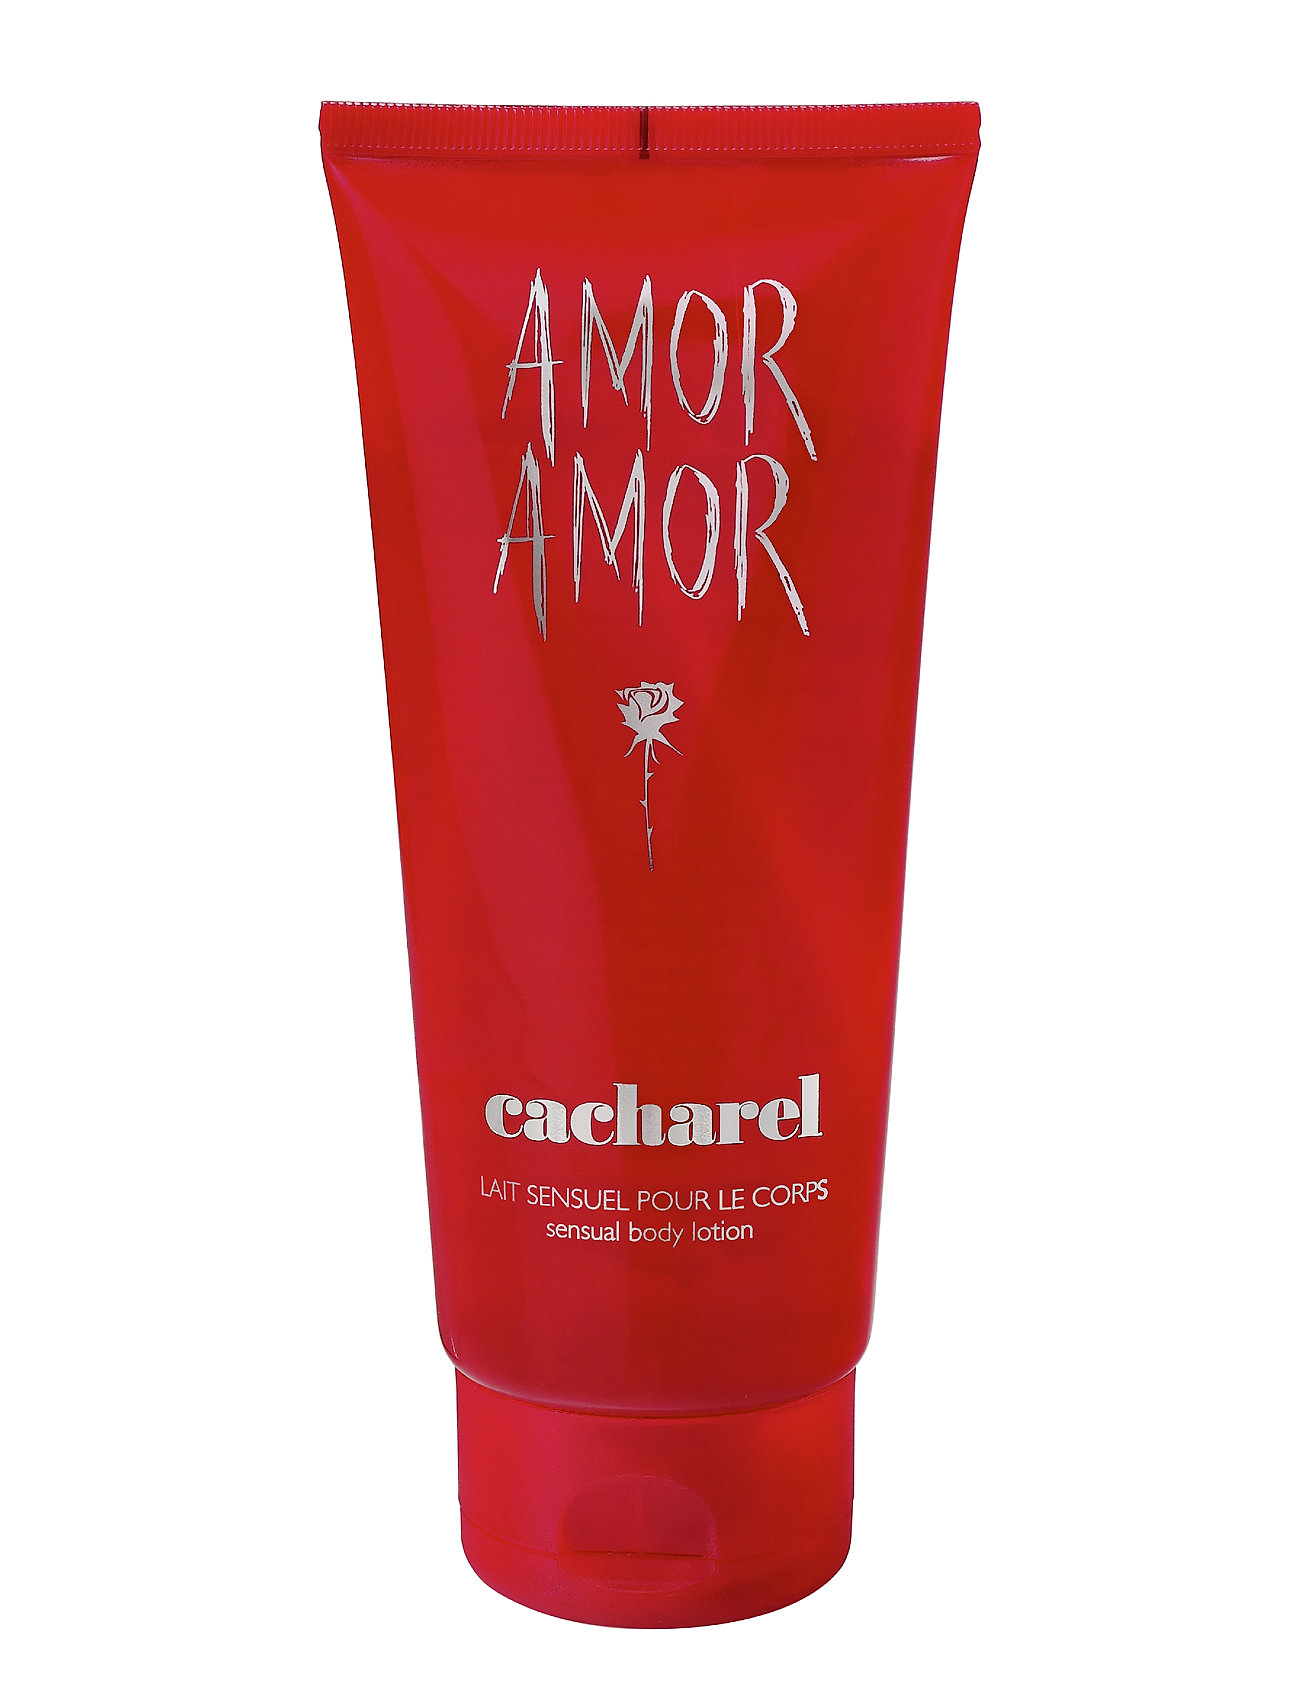 cacharel – Amor amor body lotion 200 ml på boozt.com dk